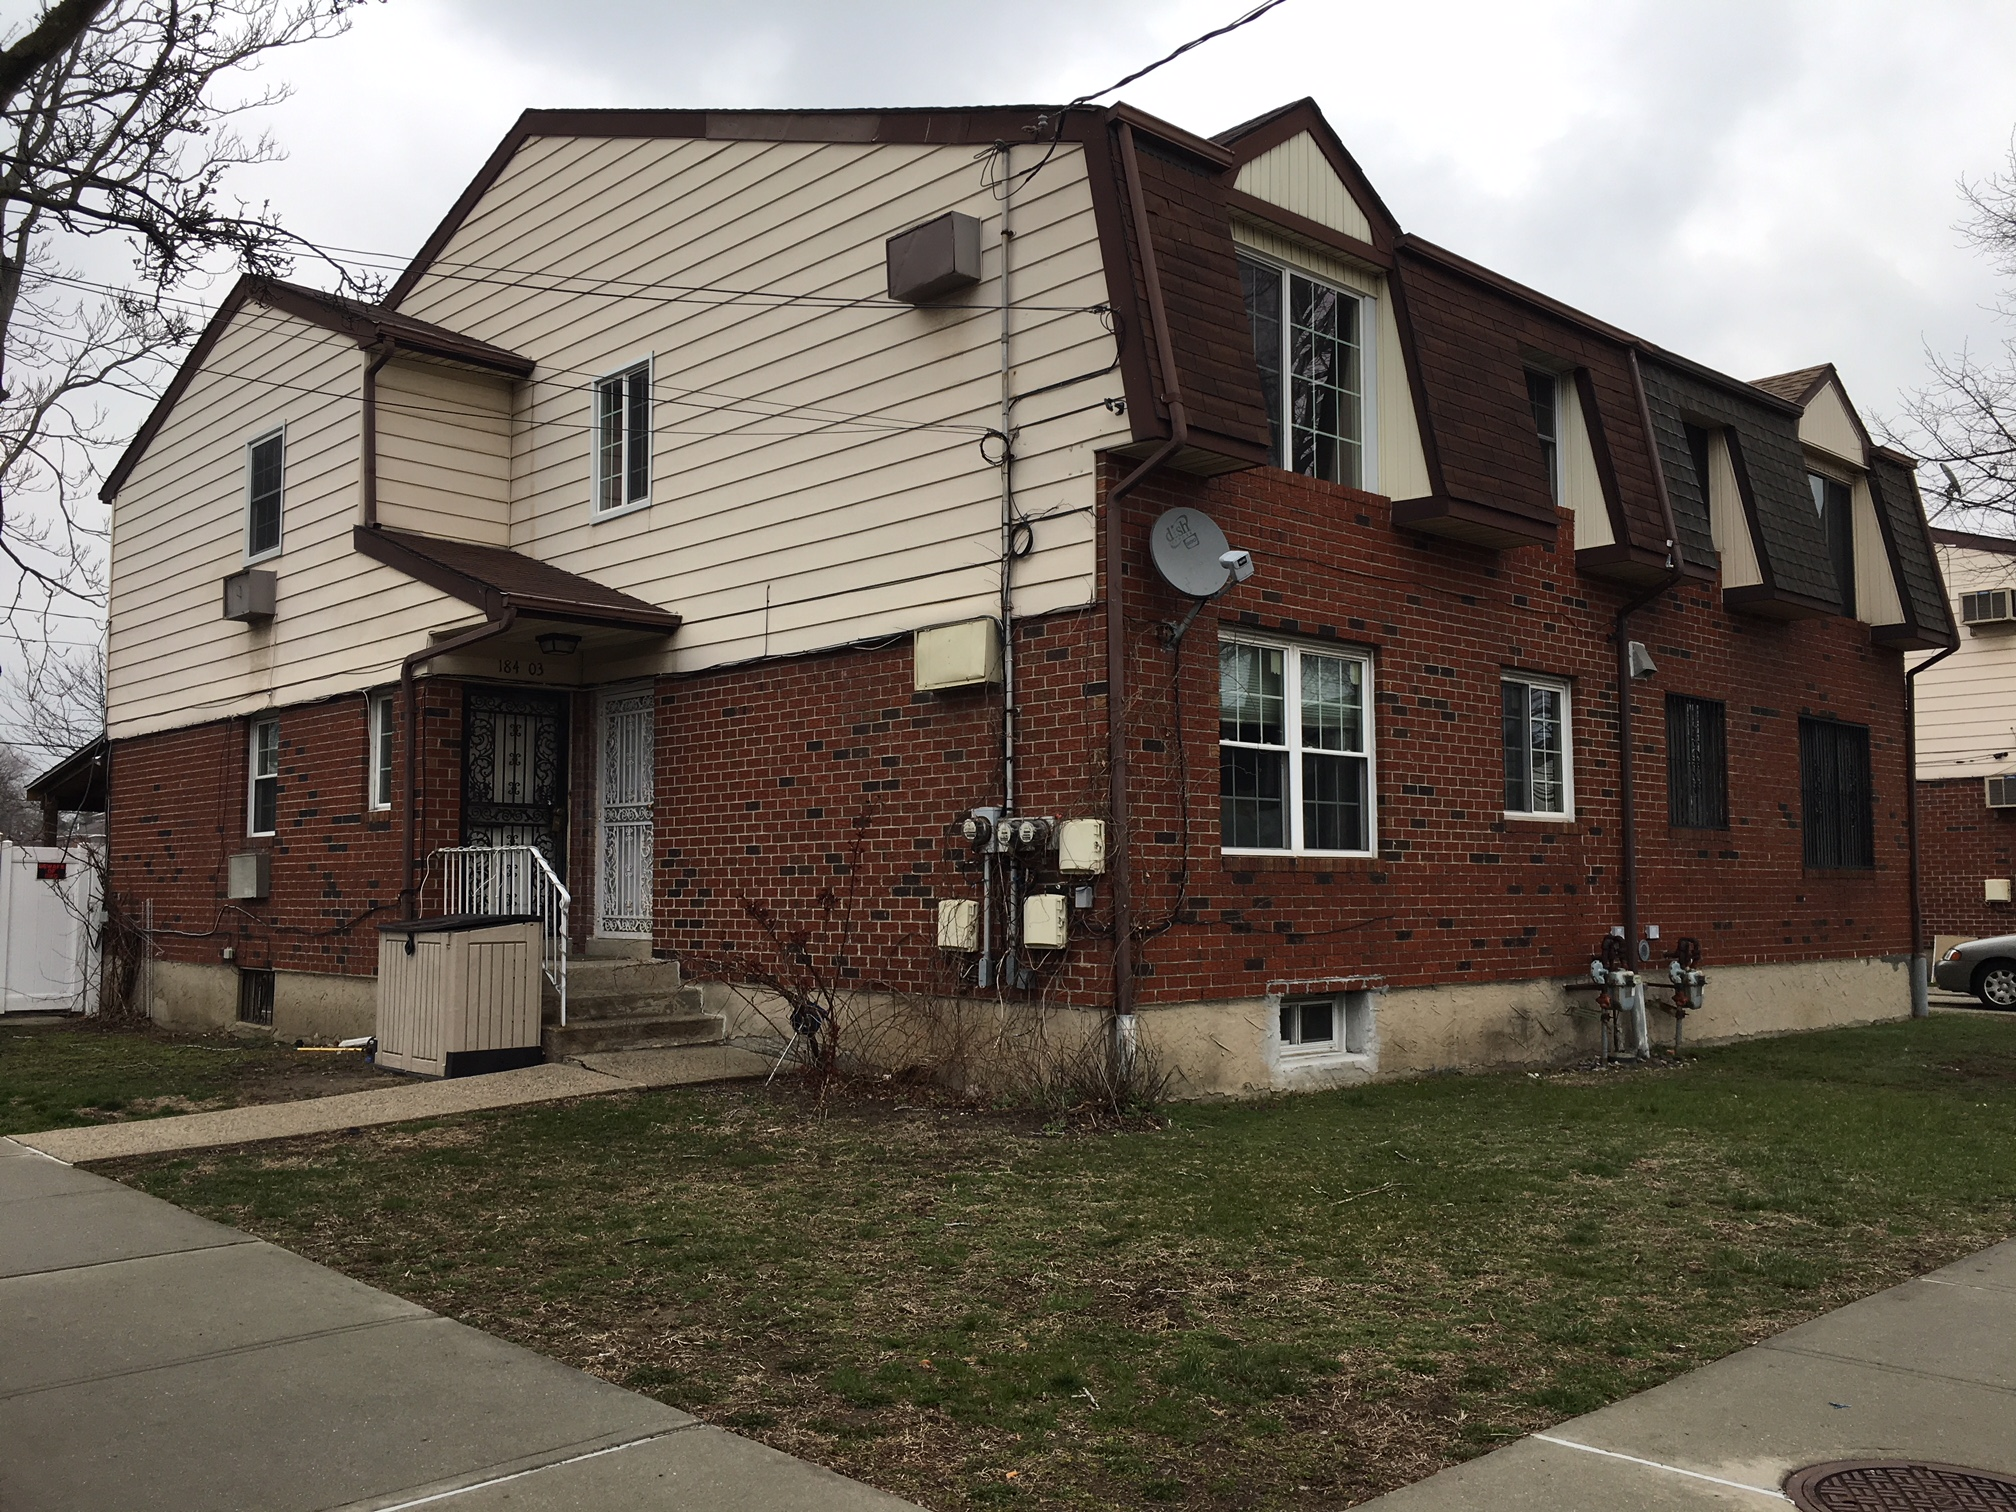 Wonderful 2 Family House In Springfield Gardens For Sale. Both Floors Feature Living Room, Formal Dining Room, Eat-In-Kitchen, 3 Bedrooms And 1.5 Bathrooms. Full Finished Basement. Hardwood Floors Throughout. 8 Car Parking. Great Location And Great Opportunity!